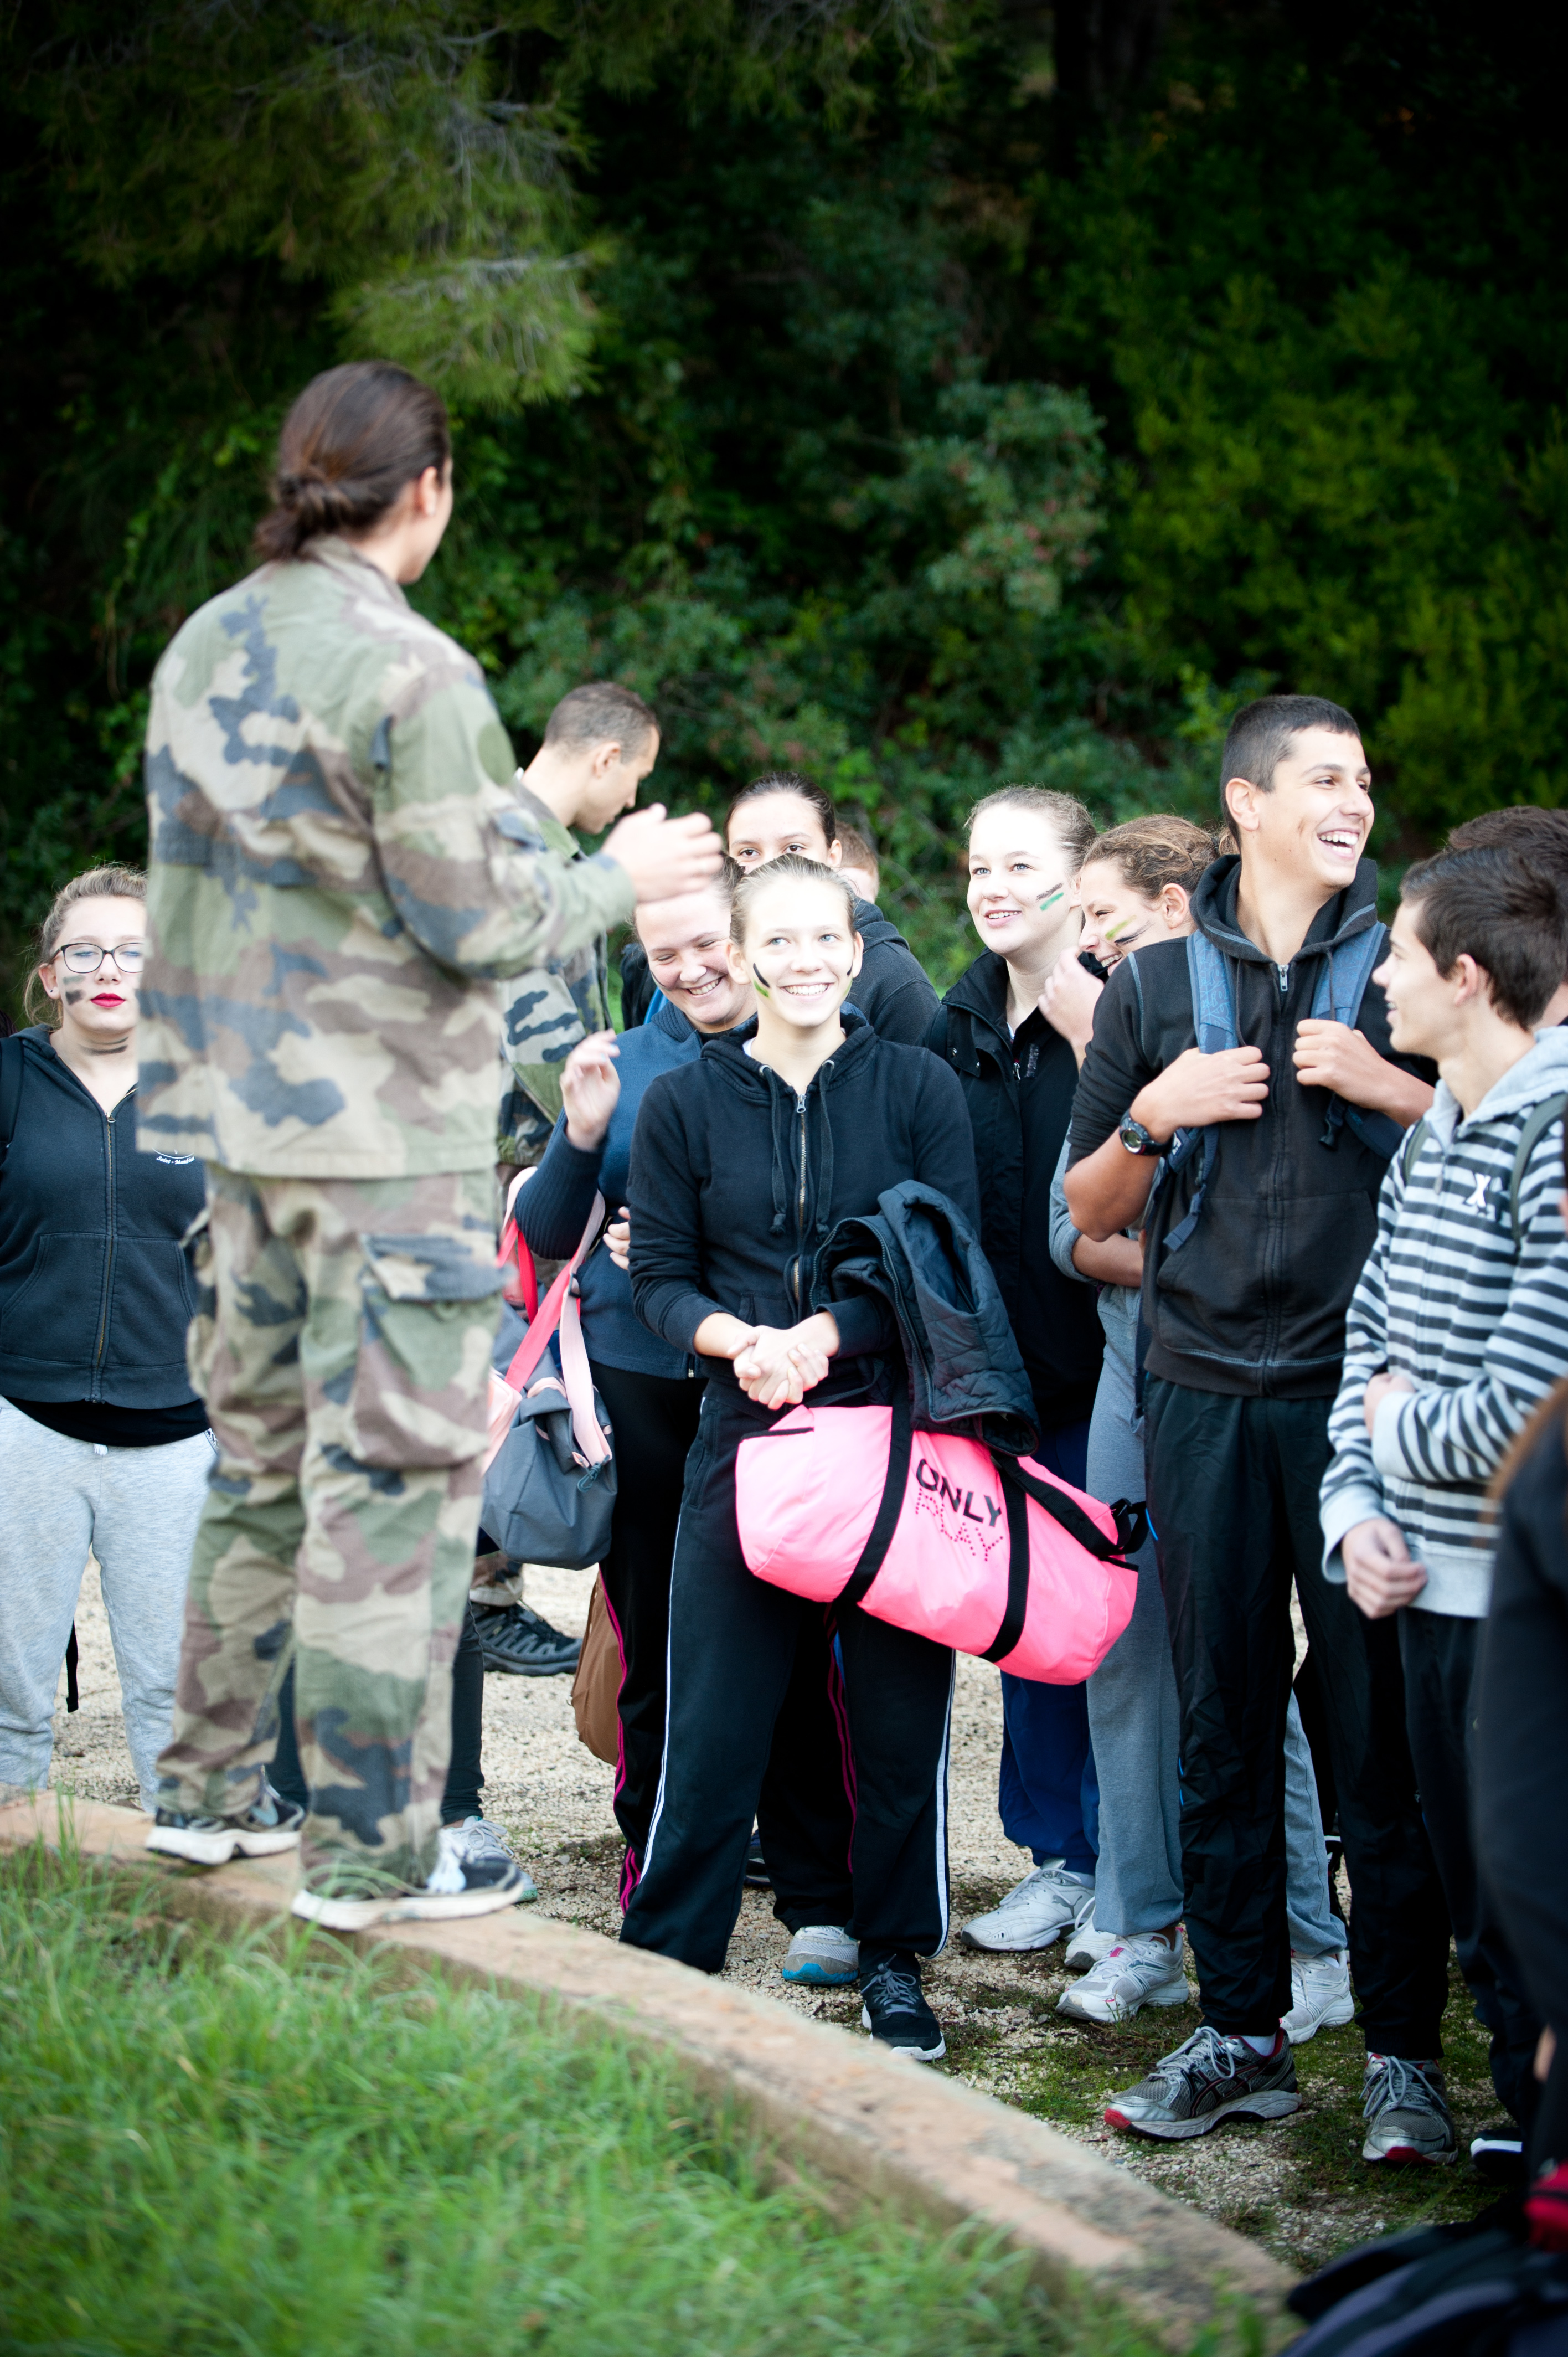 Journée Armée Jeunesse au Centre d'instruction navale de Saint-mandrier